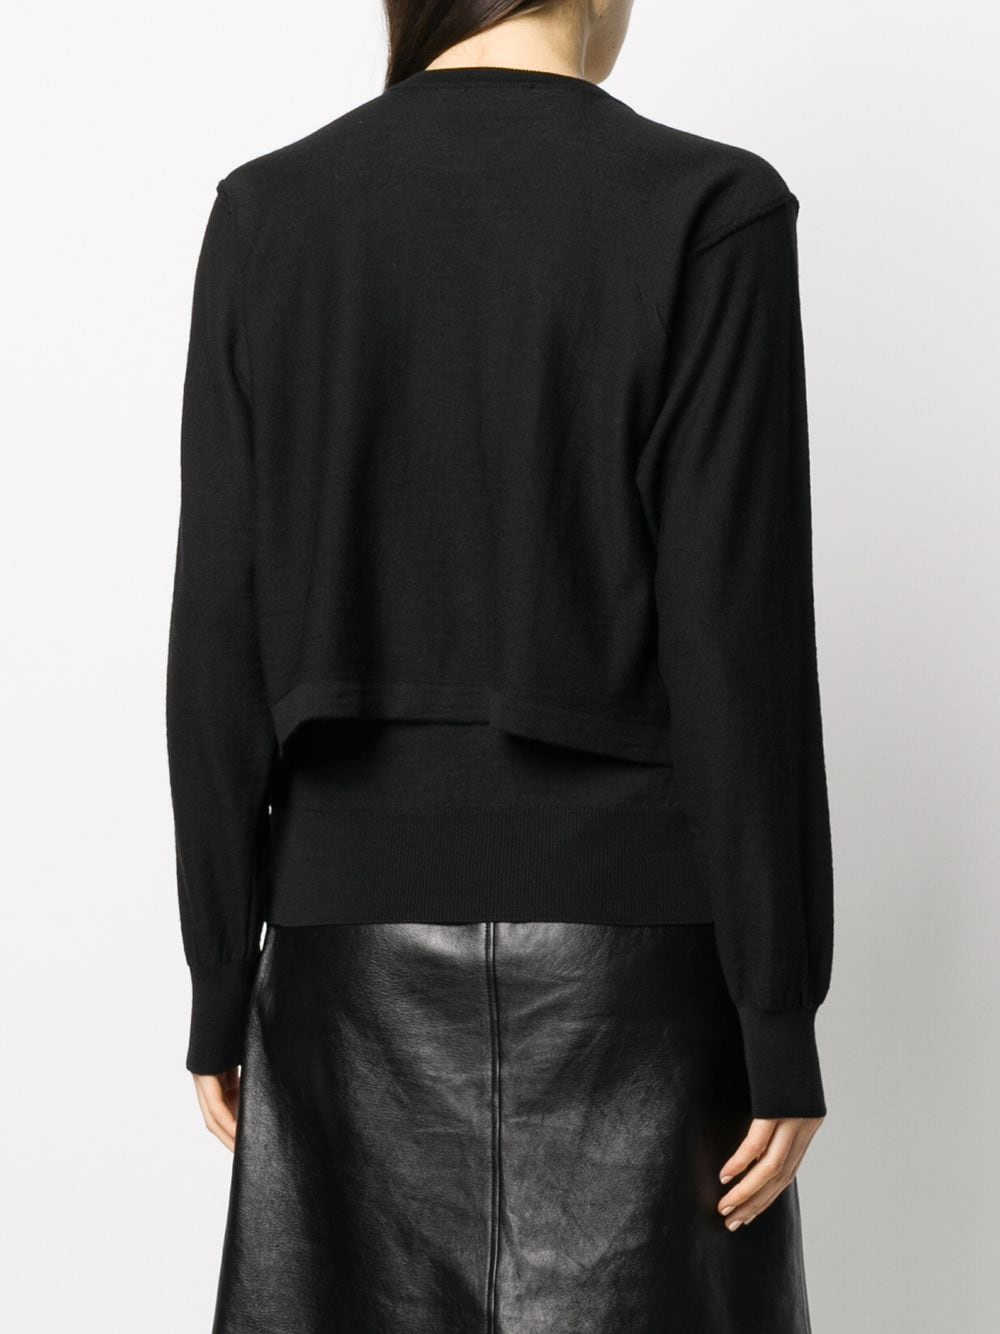 LEMAIRE |  | W203KN472LK087999